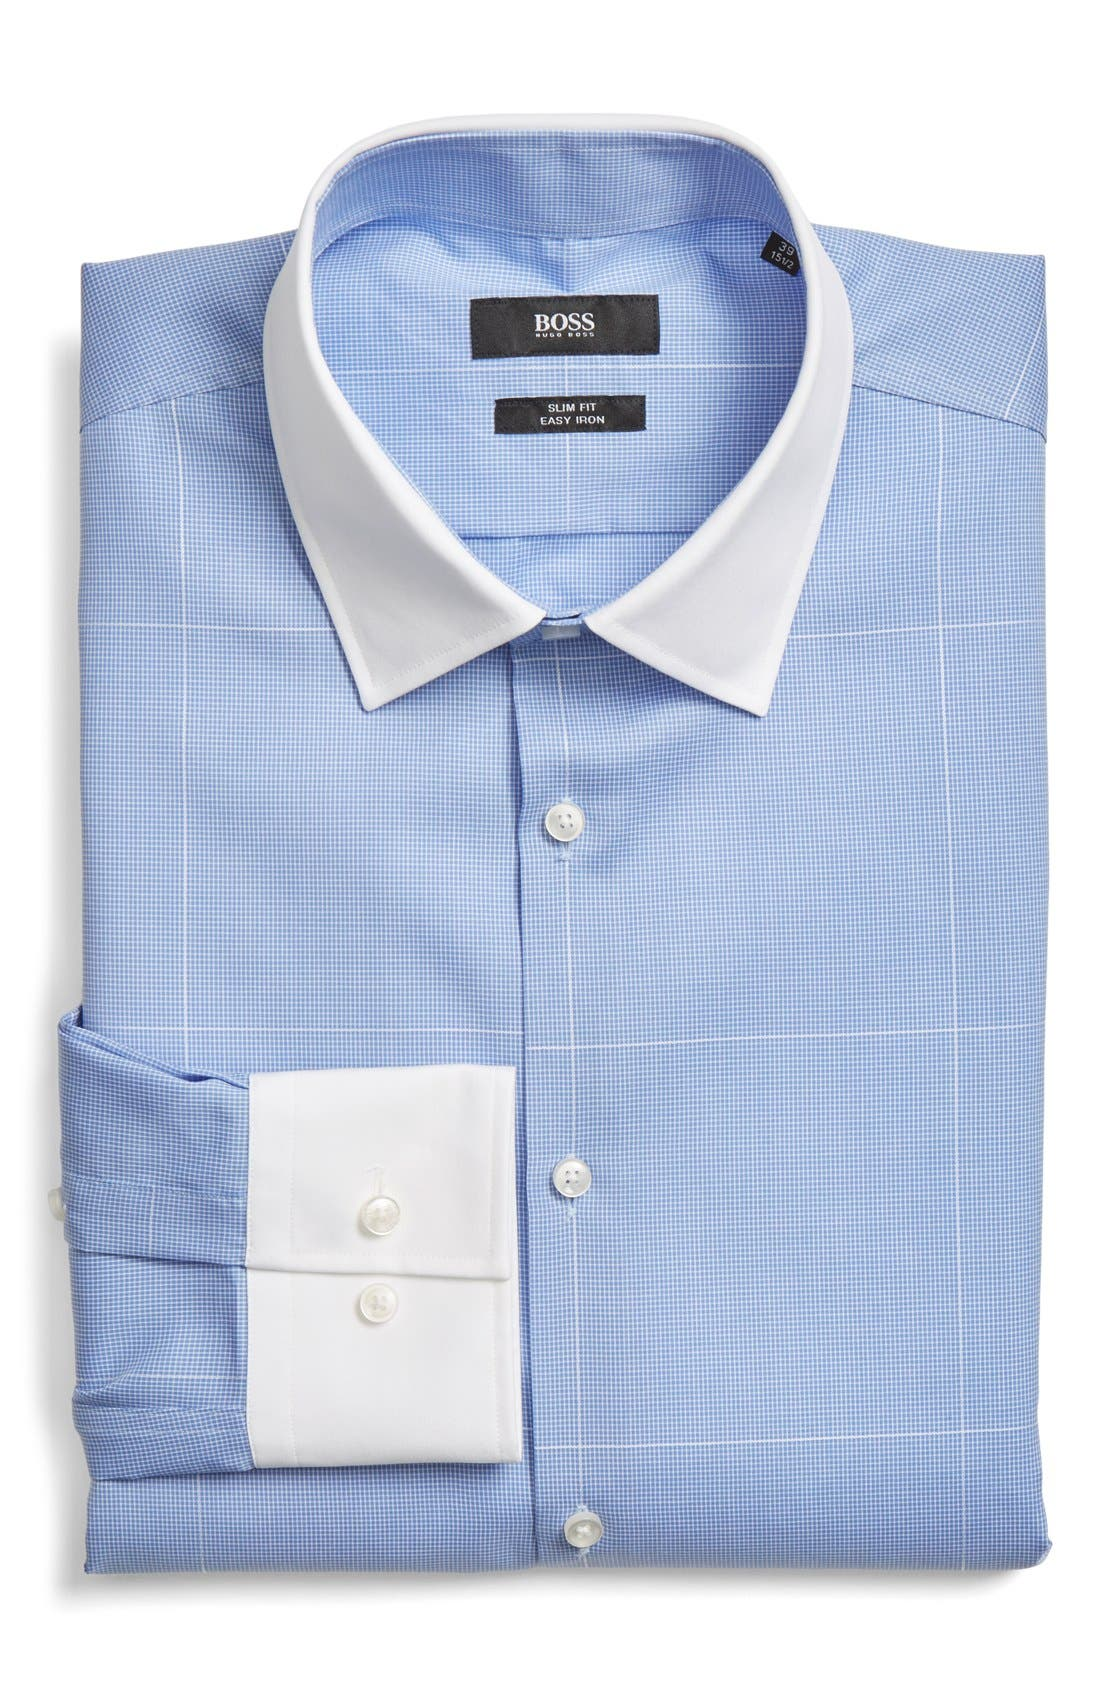 Alternate Image 1 Selected - BOSS WW Slim Fit Easy Iron Check Dress Shirt